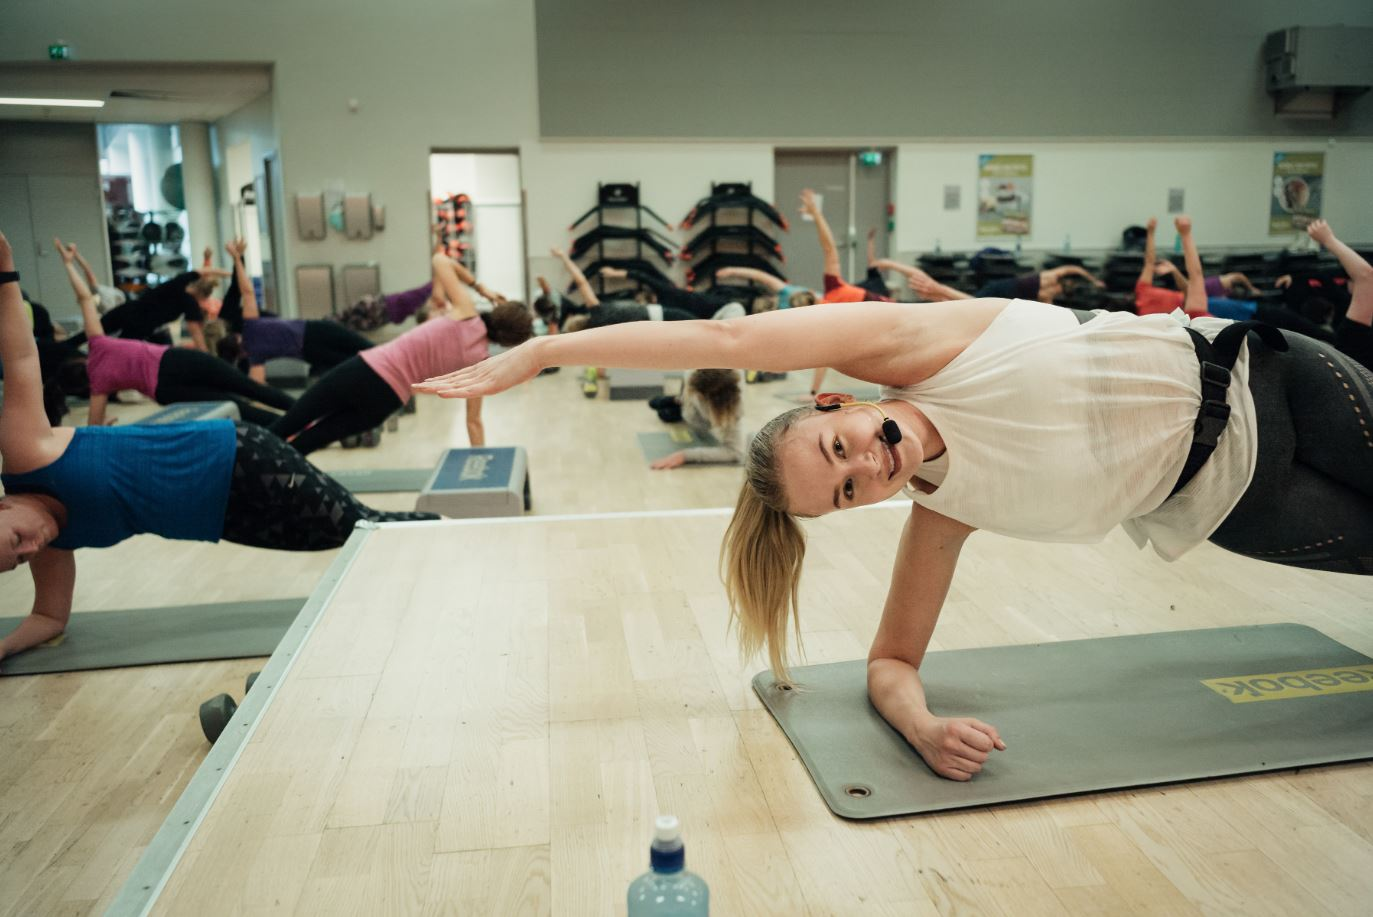 Fitness industry seeks millennium-old skills – and knowledge of how to become bootylicious